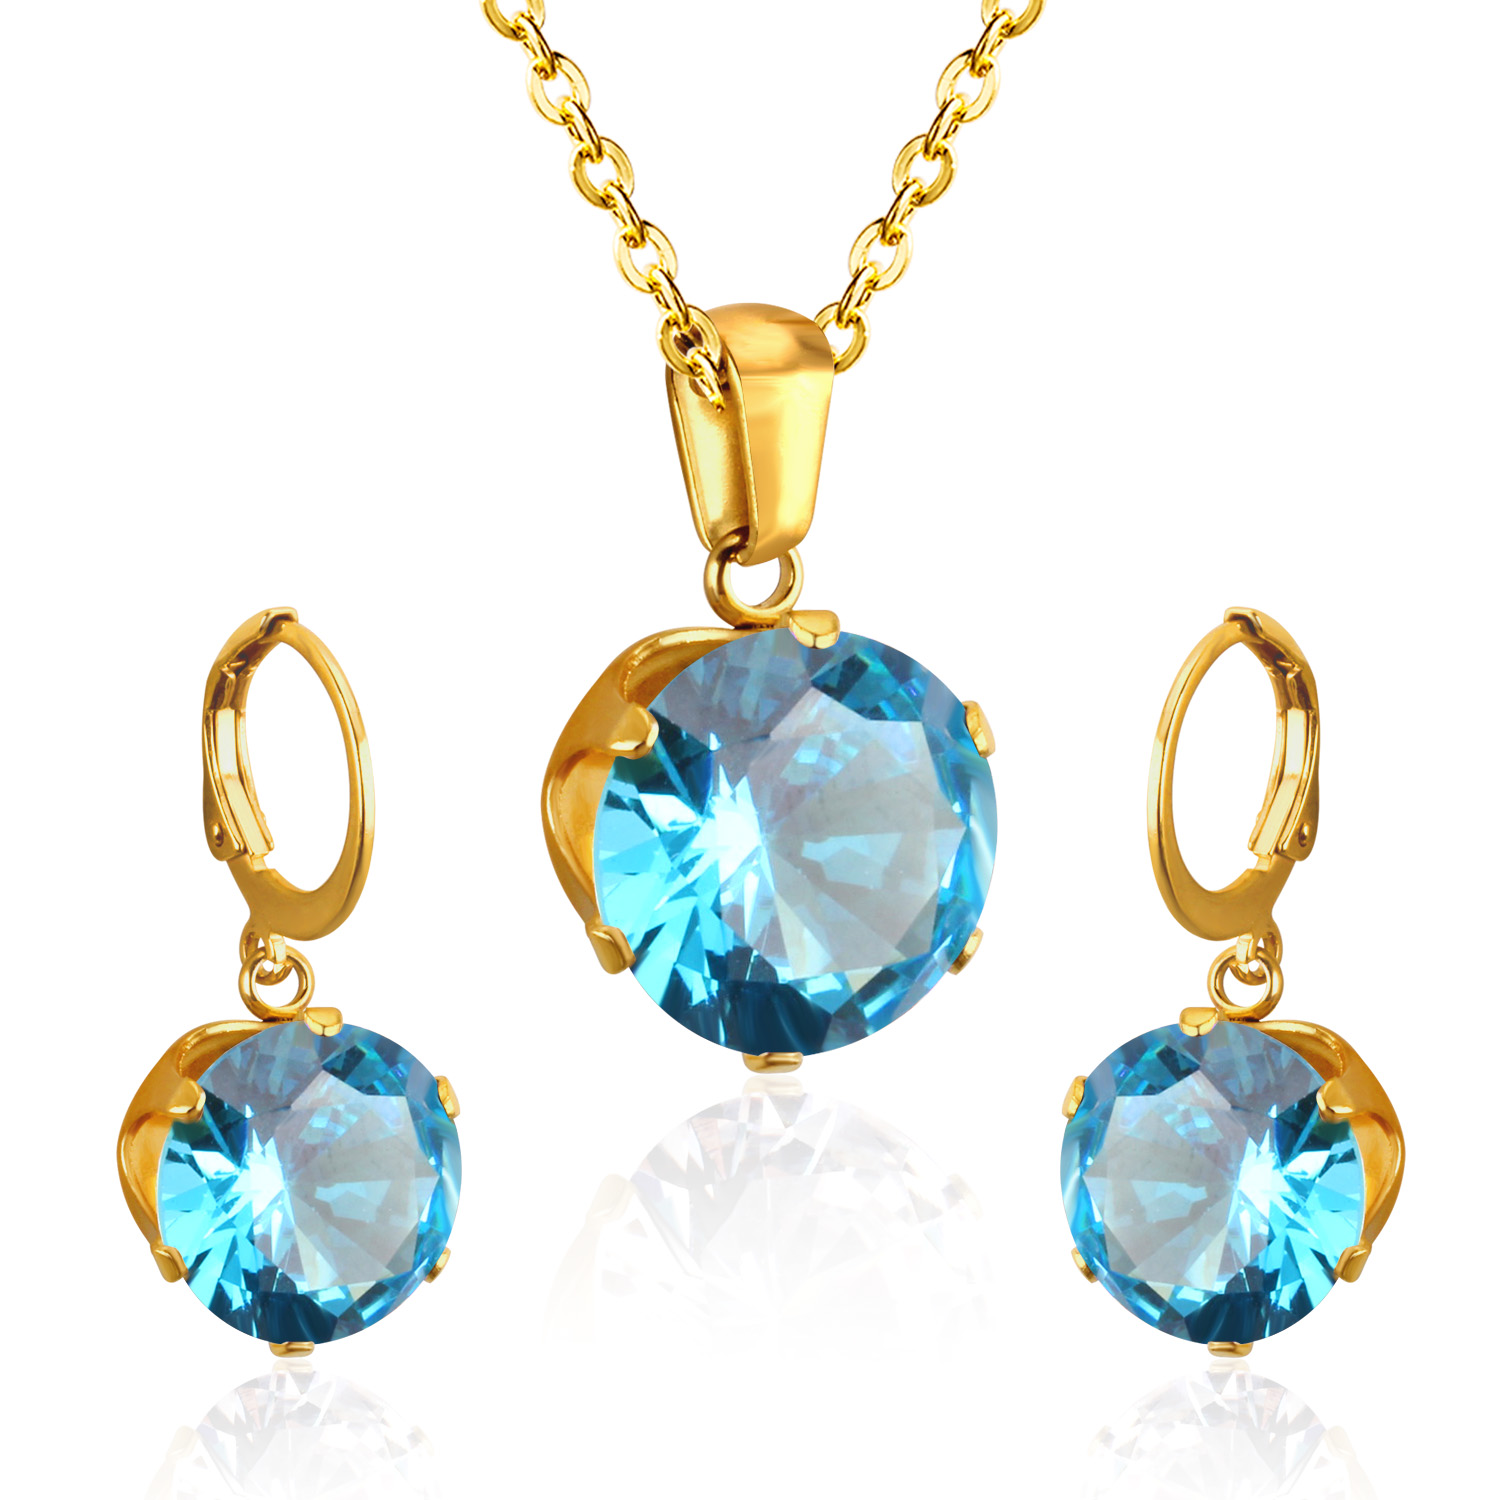 LUXUKISSKIDS Luxury Gold Color Bridal Jewelry Sets More for Women Wedding with High Quality AAA Zircon